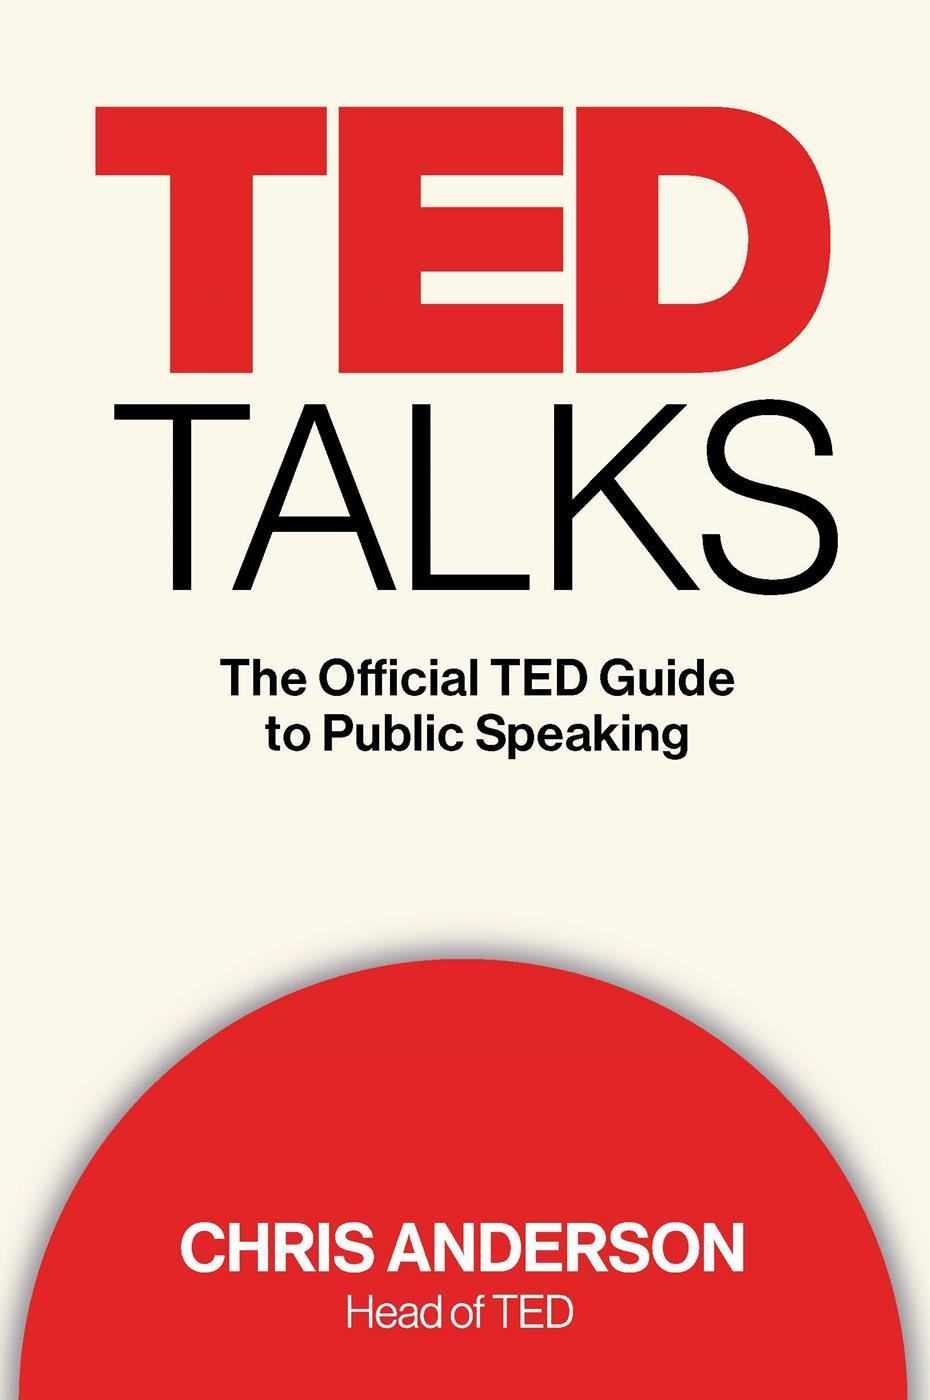 TED Talks: The Official TED Guide to Public Speaking - Chris Anderson - reviews, quotes, summary